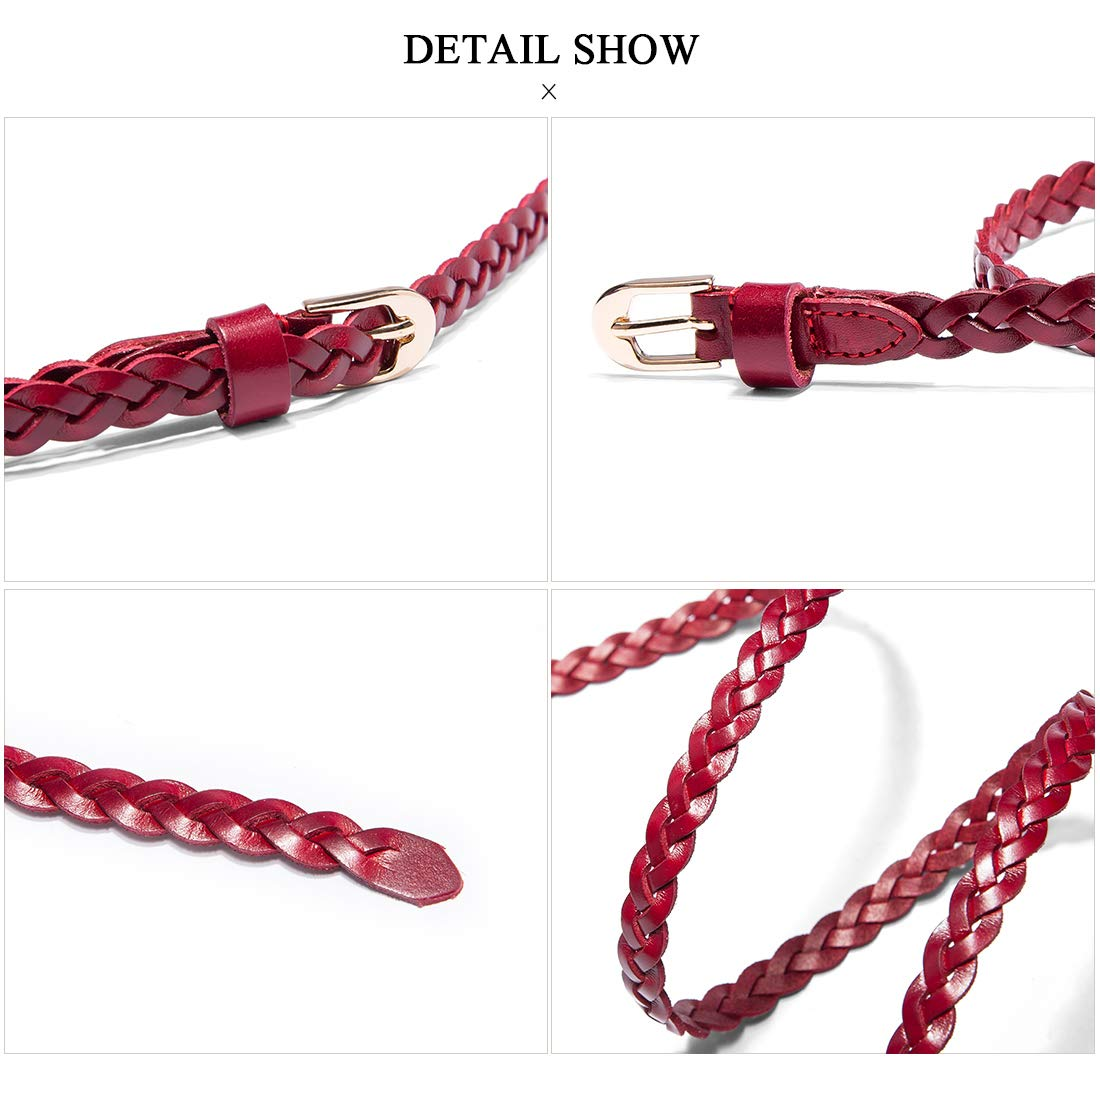 Women Cow Leather Stylish Adjustable Casual Skinny Belts Woven Stretch Braided Red Belts by OMENTAR (Image #5)